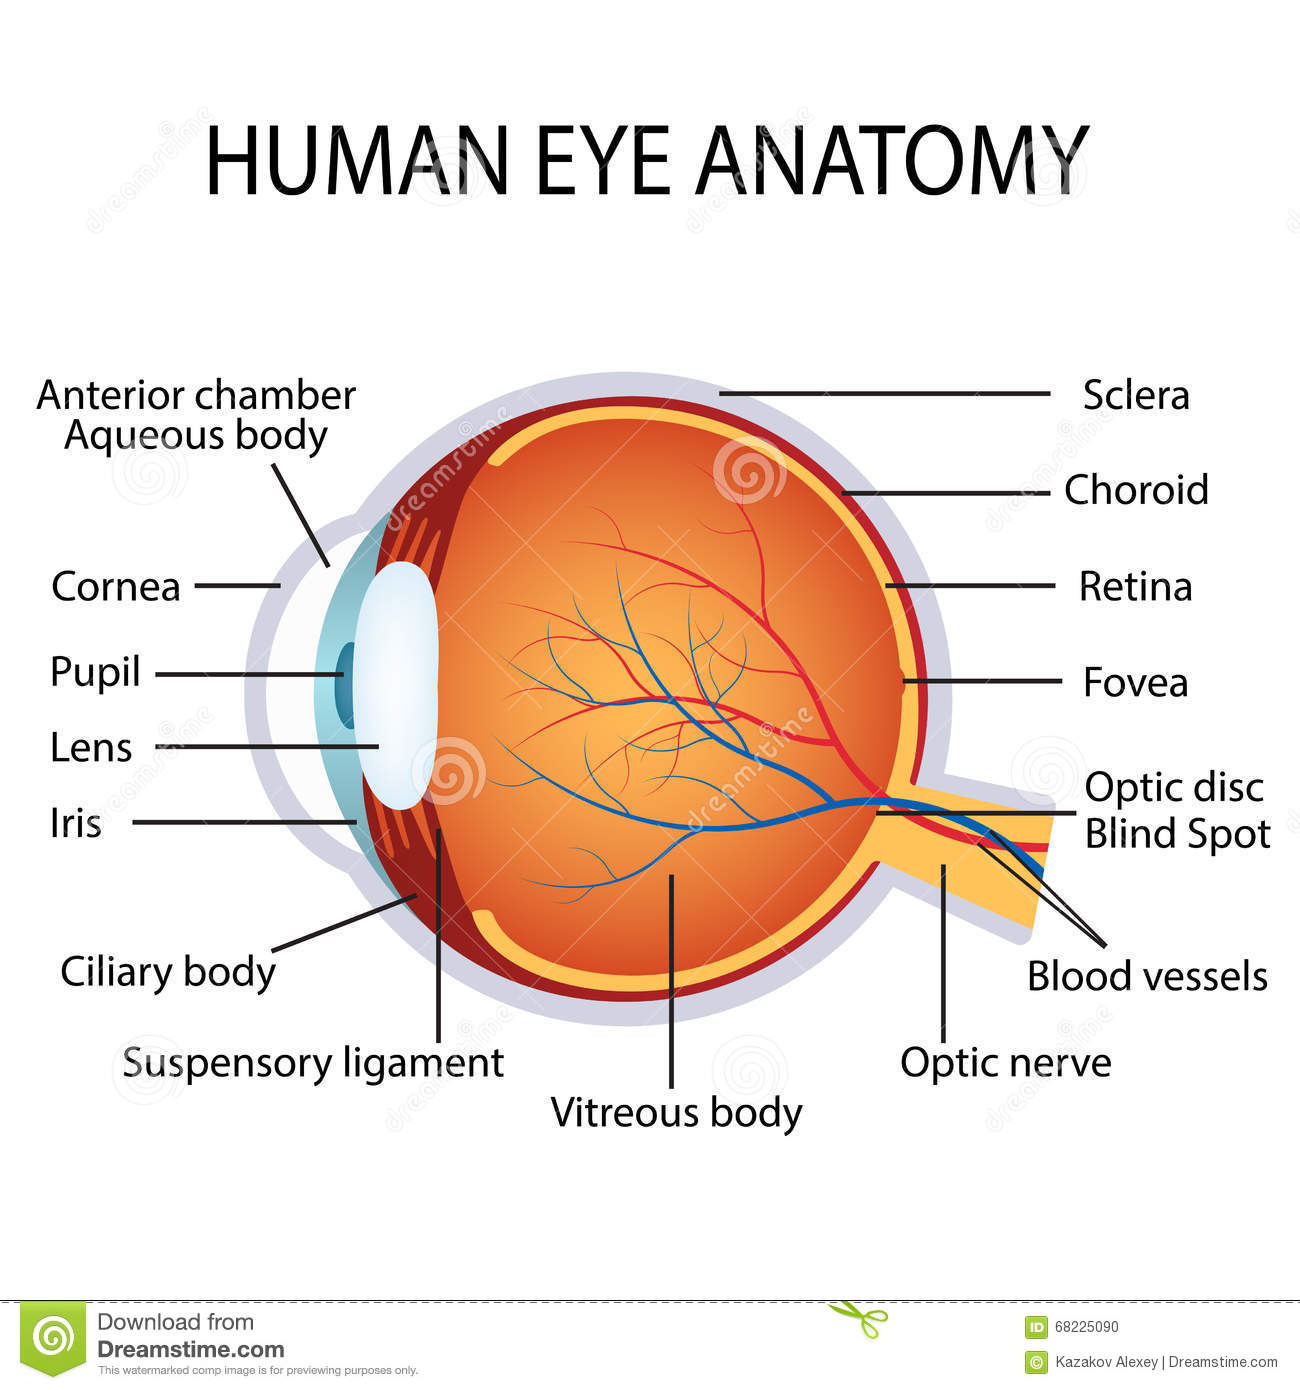 Human eye anatomy stock vector. Illustration of eyesight - 68225090